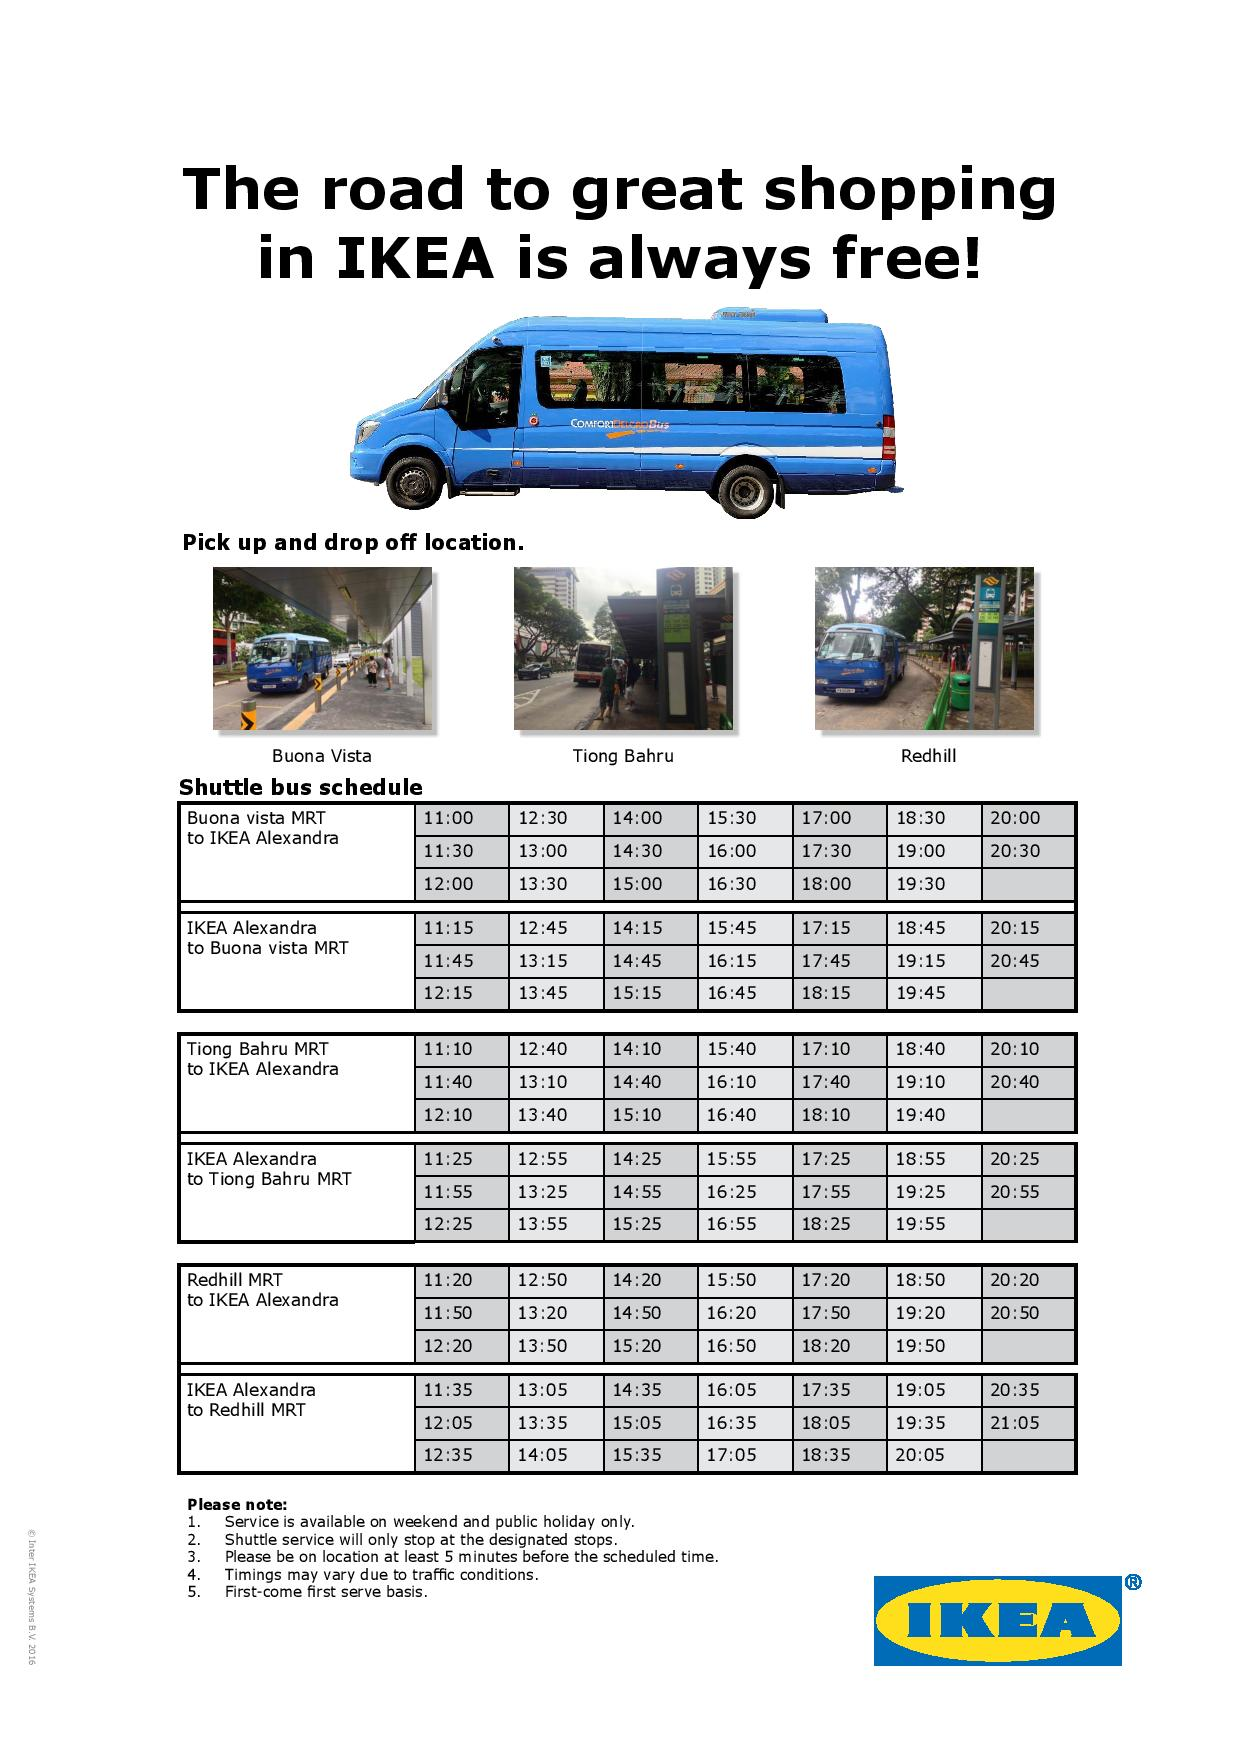 ikea alexandra free shuttle bus services | land transport guru